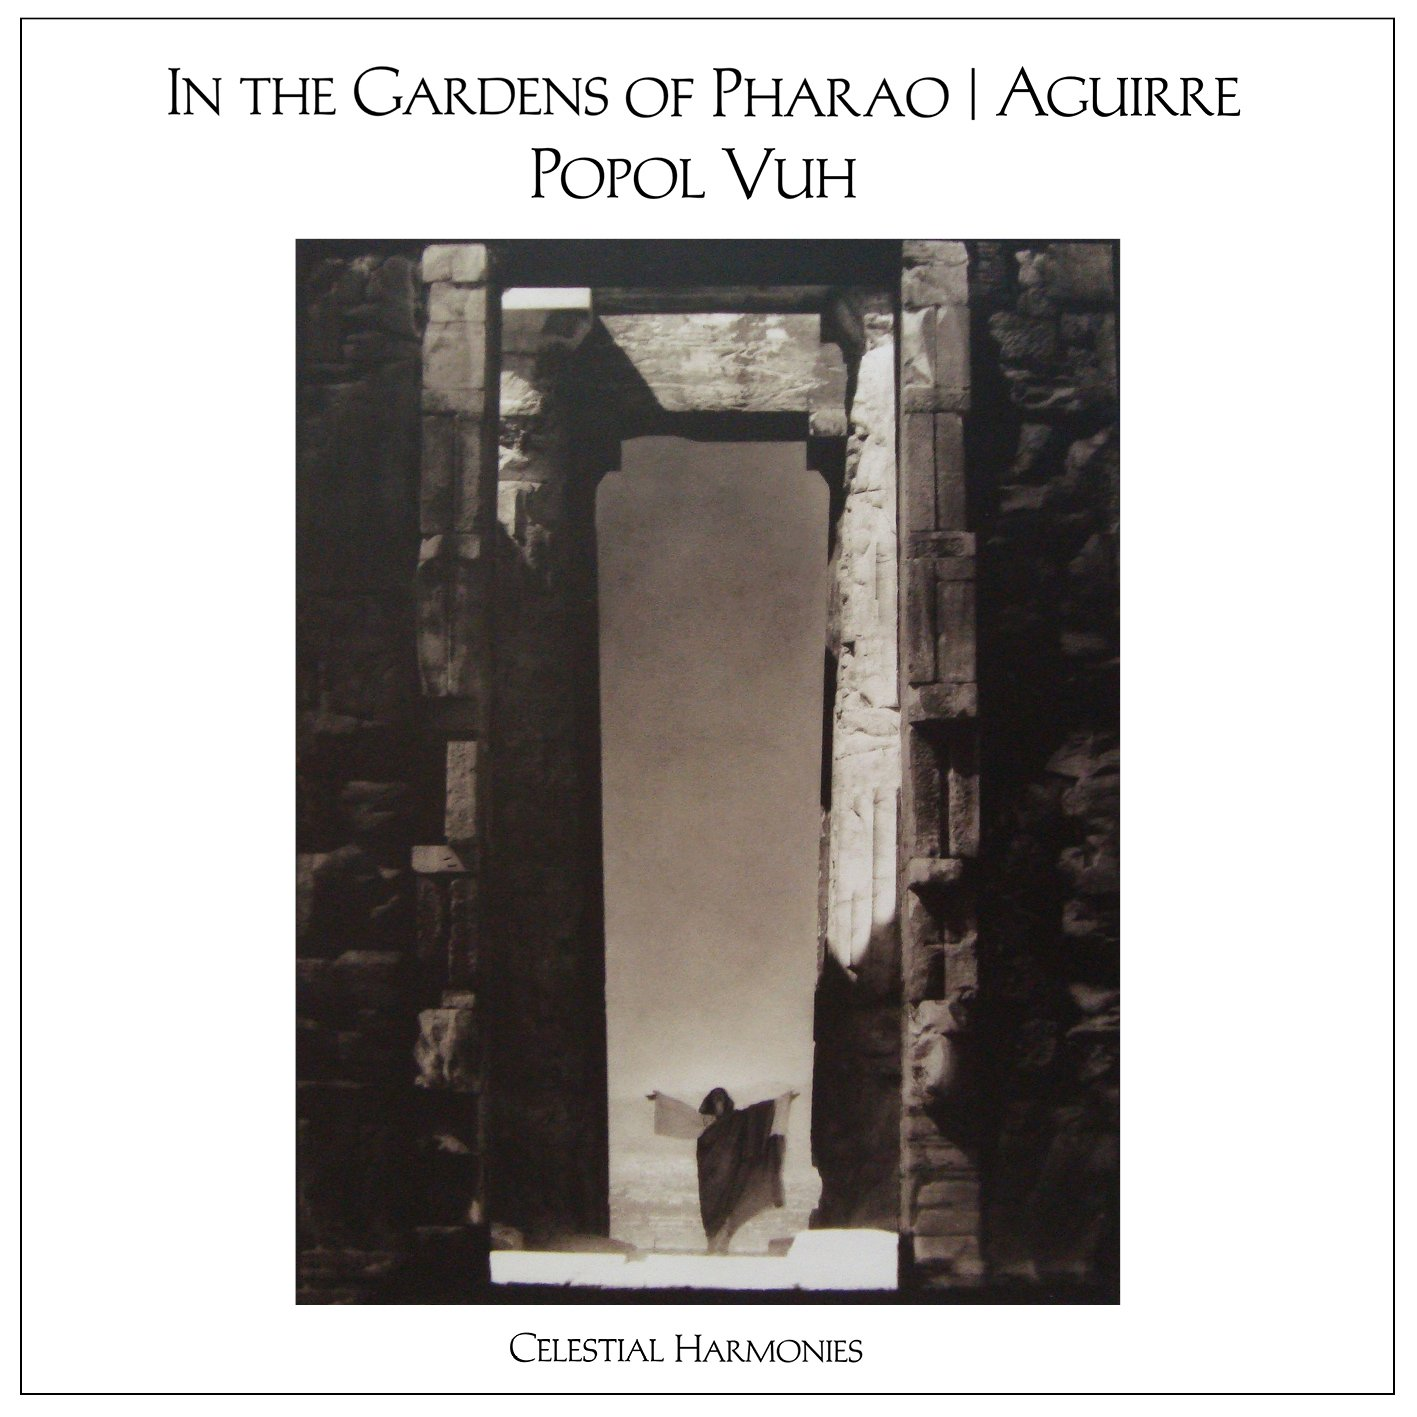 In the Gardens of Pharao by Celestial Harmonies